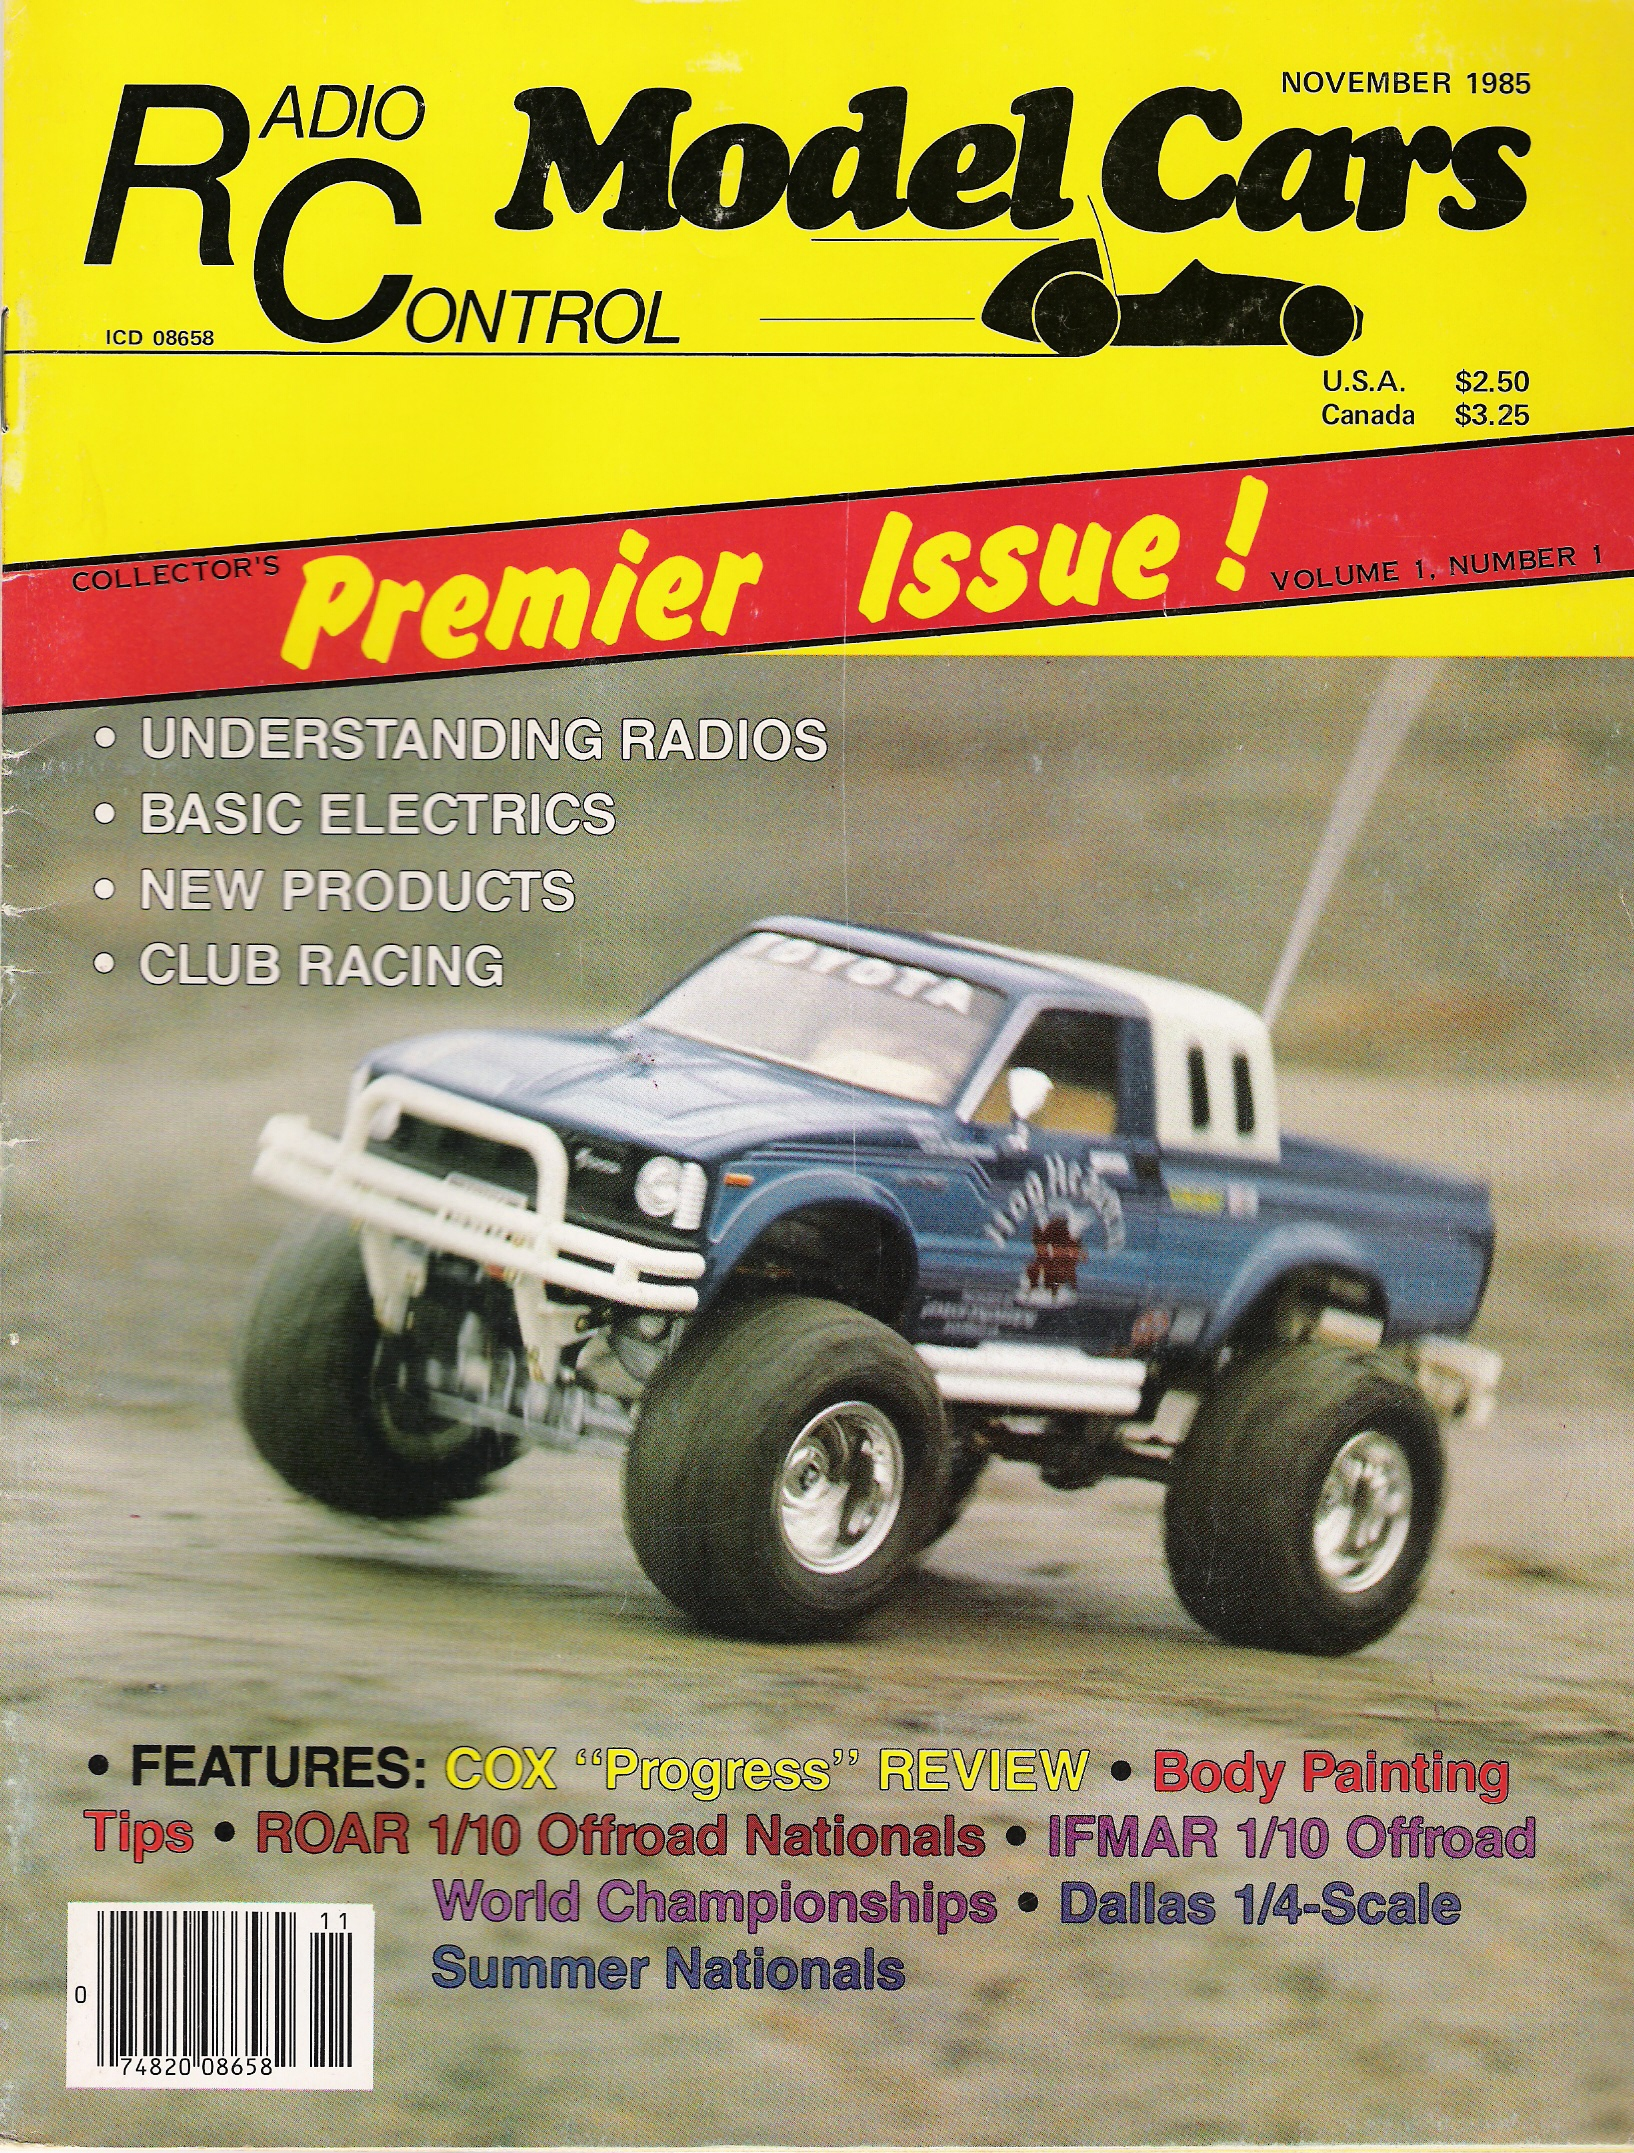 Radio Control Model Cars' November 1985 cover.